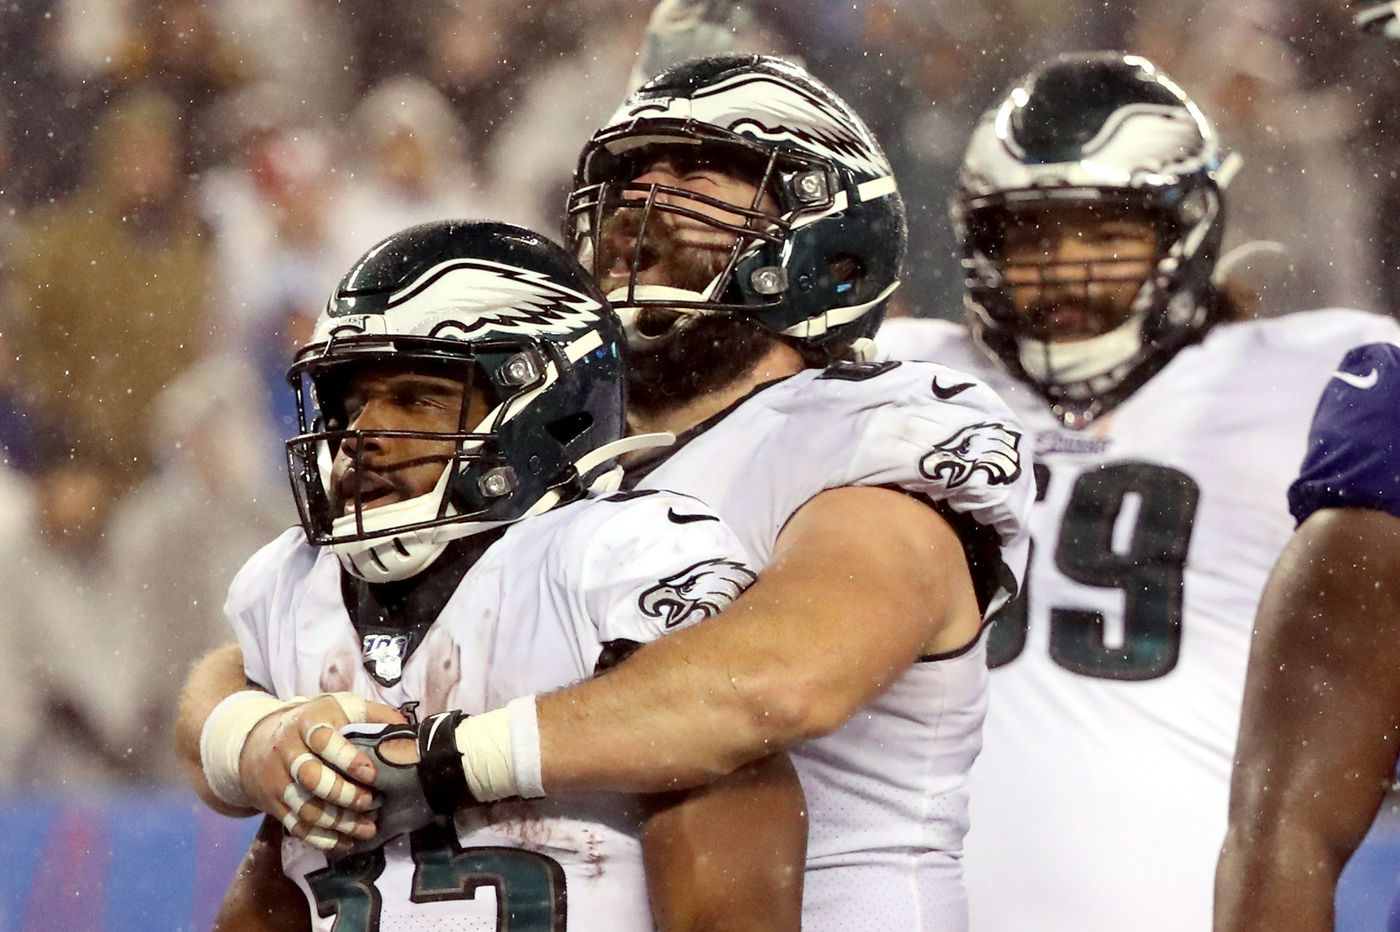 Not playing football this year wasn't an option for Eagles center Jason Kelce